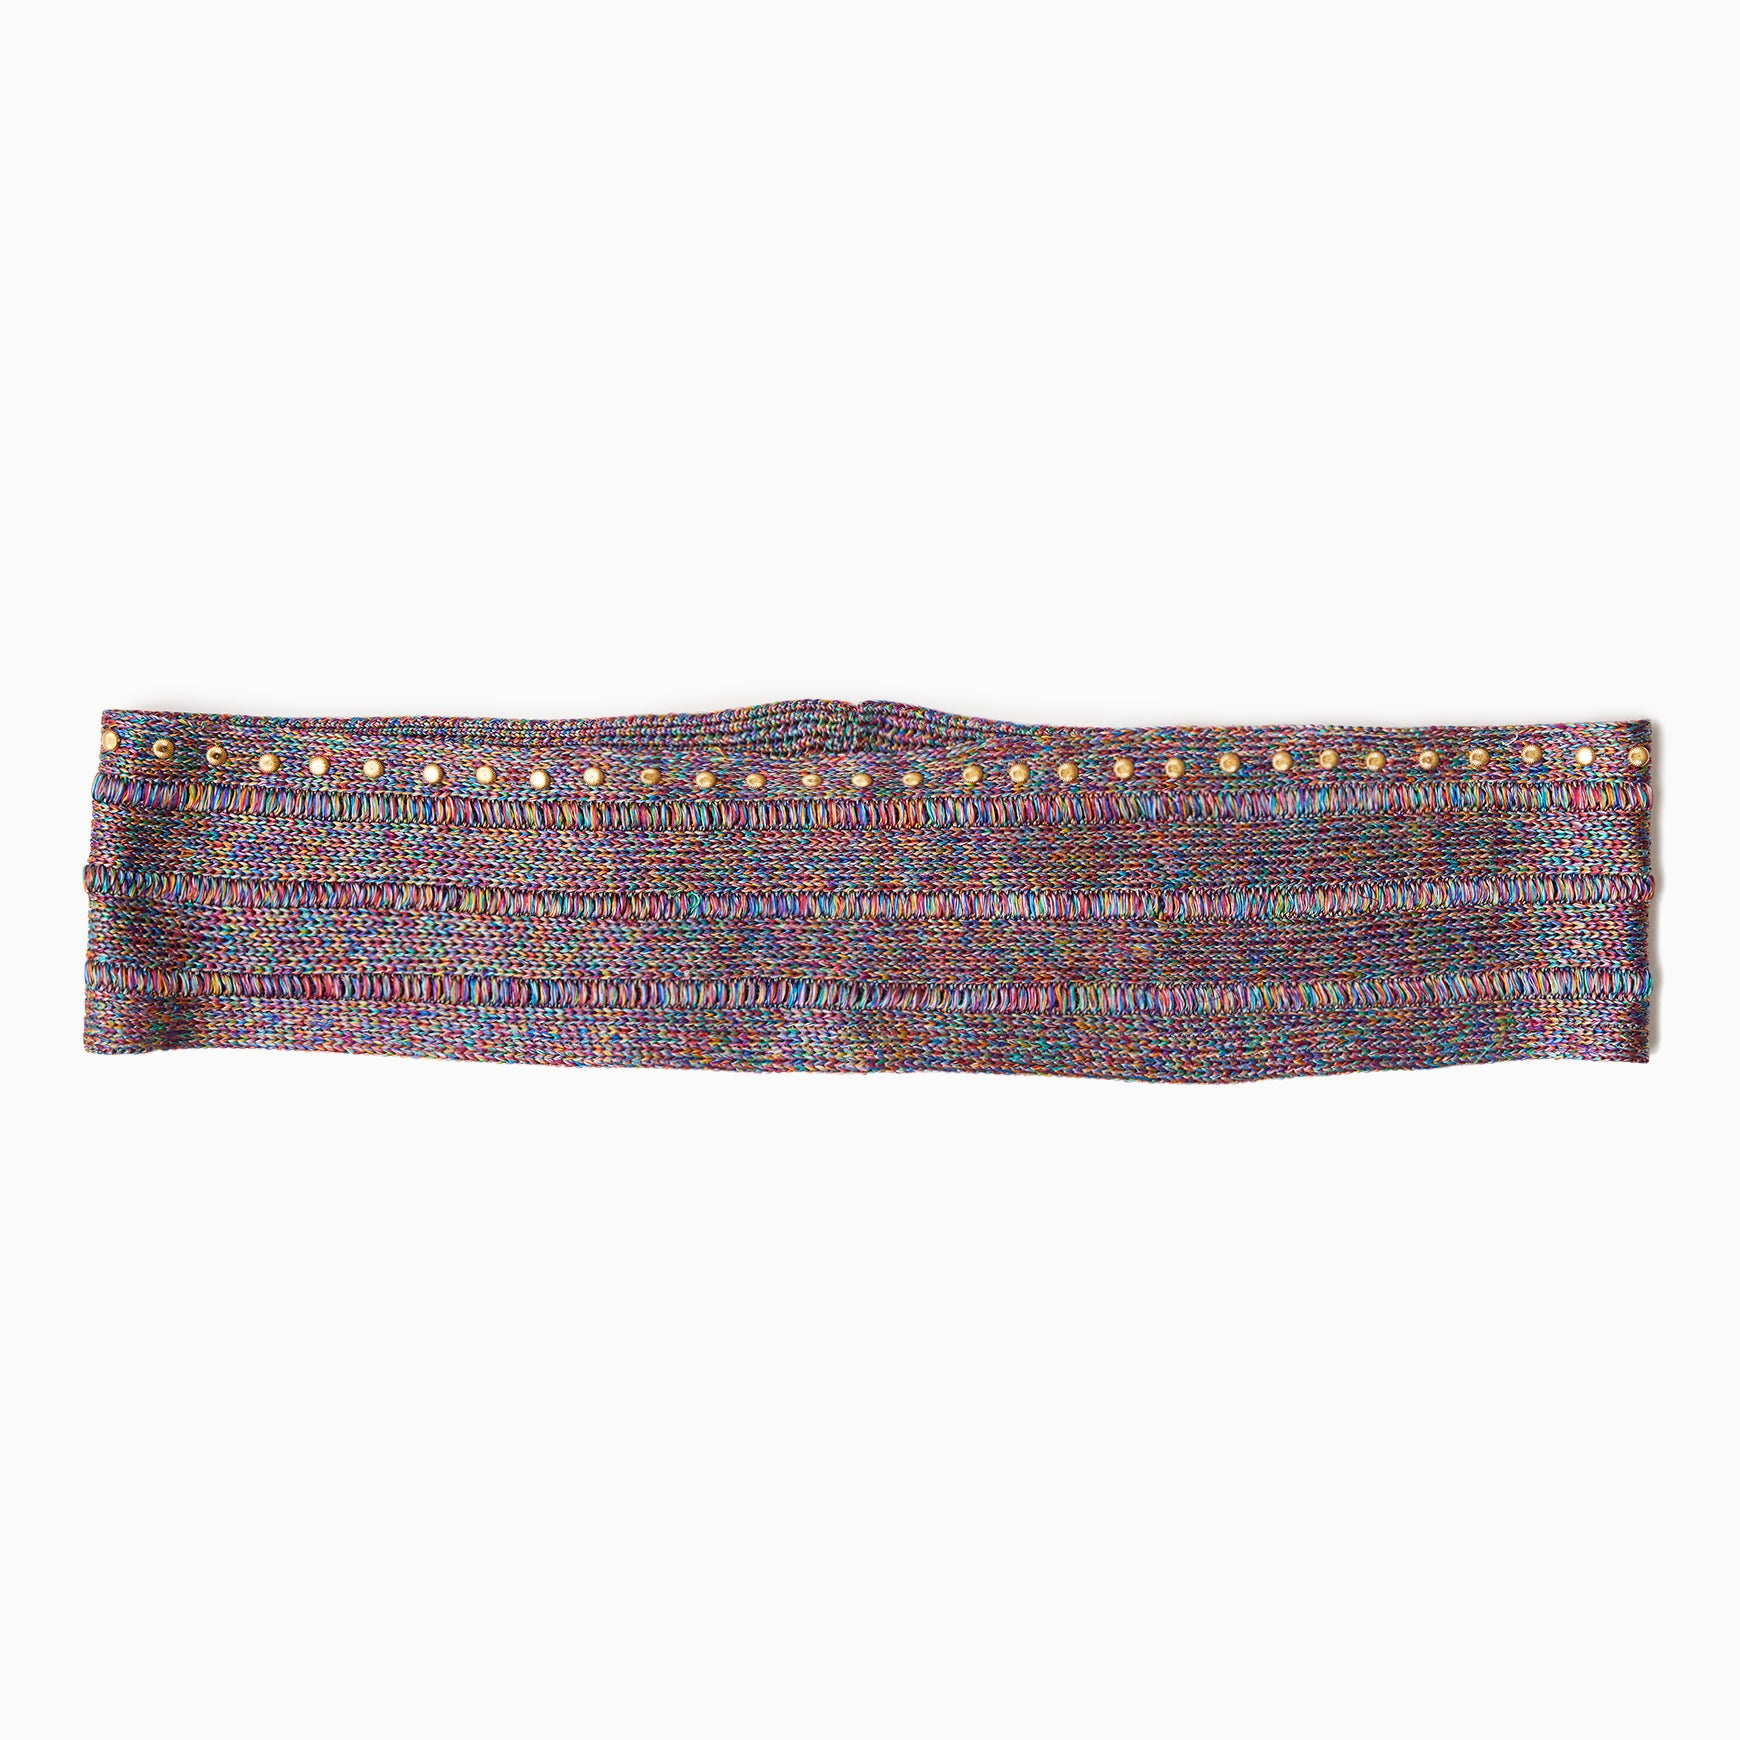 TYPE-1 ATLAS Knit Silk Waist Part Medium (Multi)